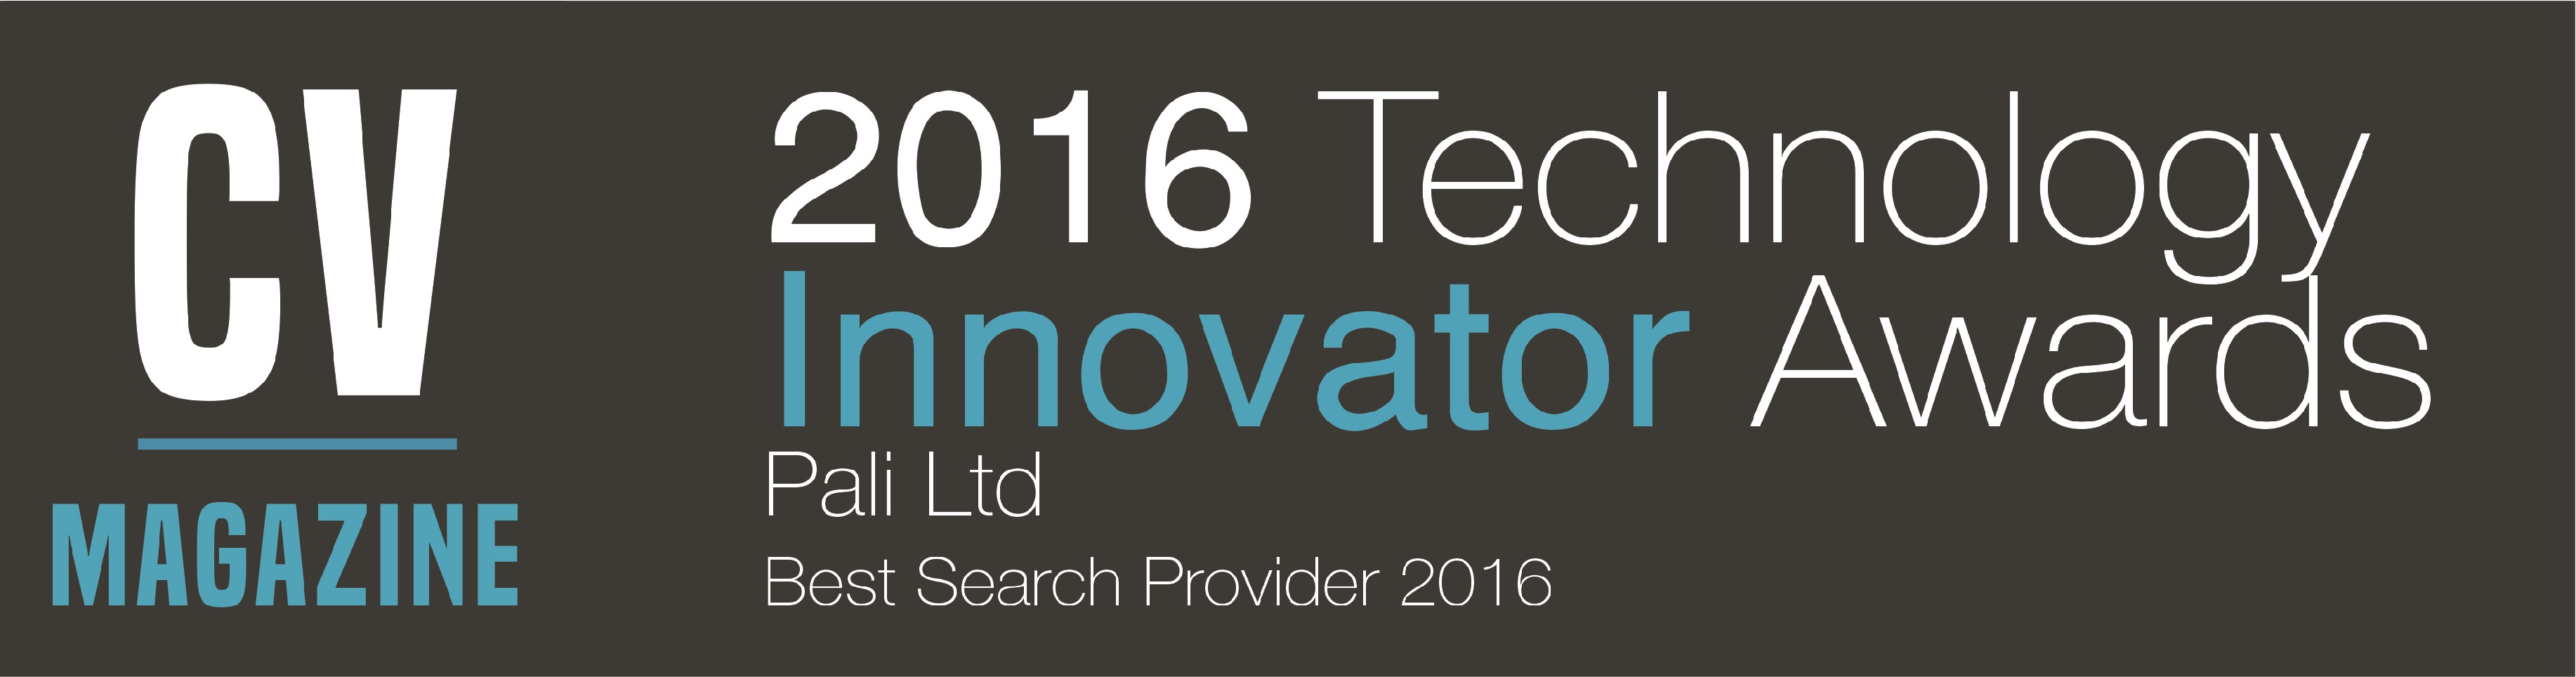 Technology Innovator Awards - Best Conveyancing Search Provider 2016